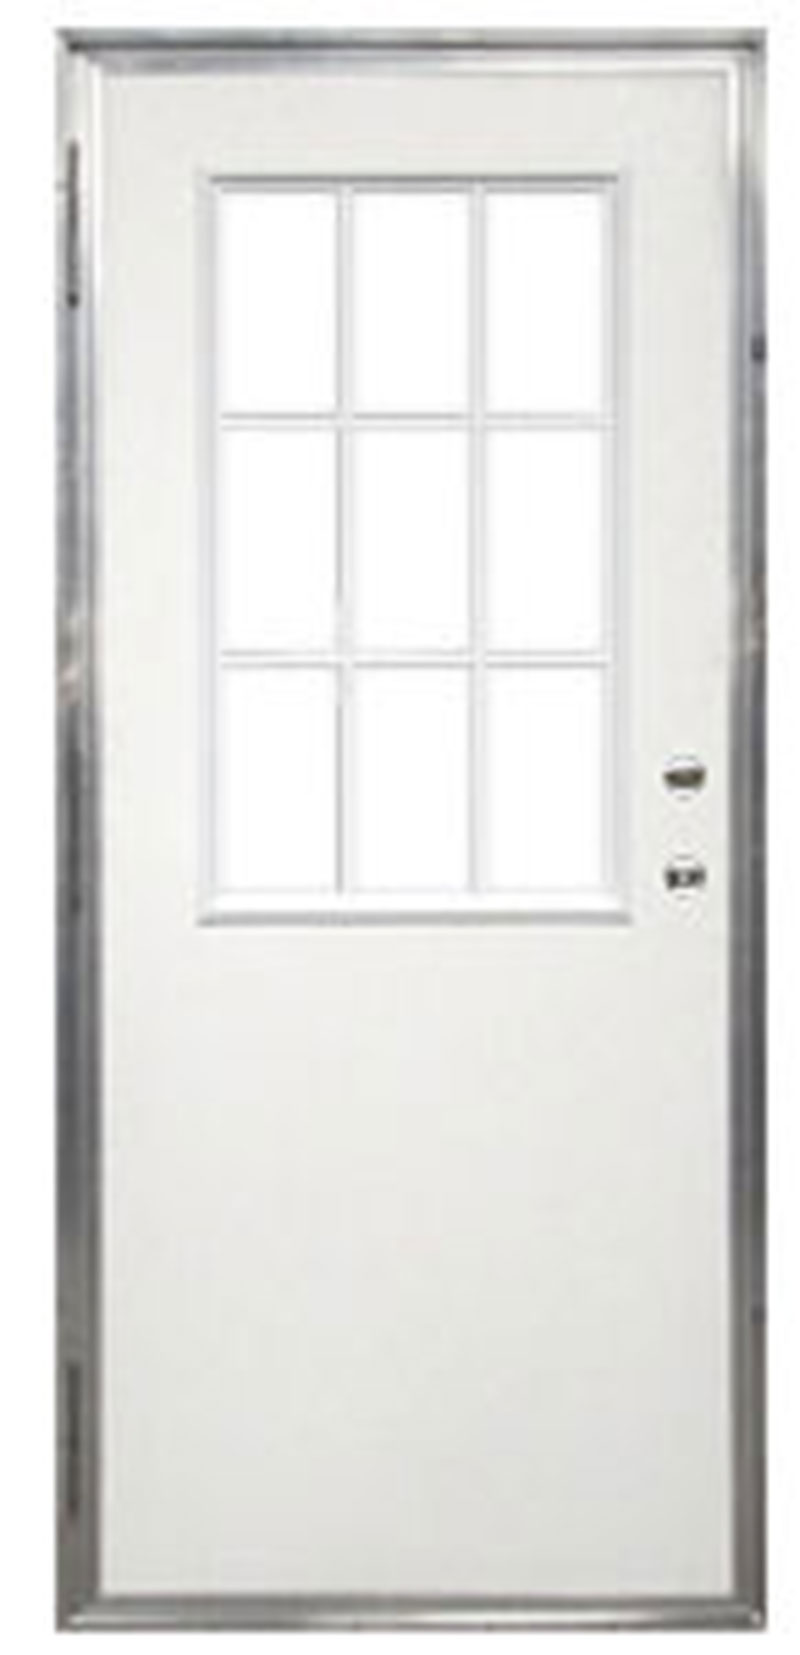 4. Out Swing Mobile Home Exterior Door With 9 Lite Window